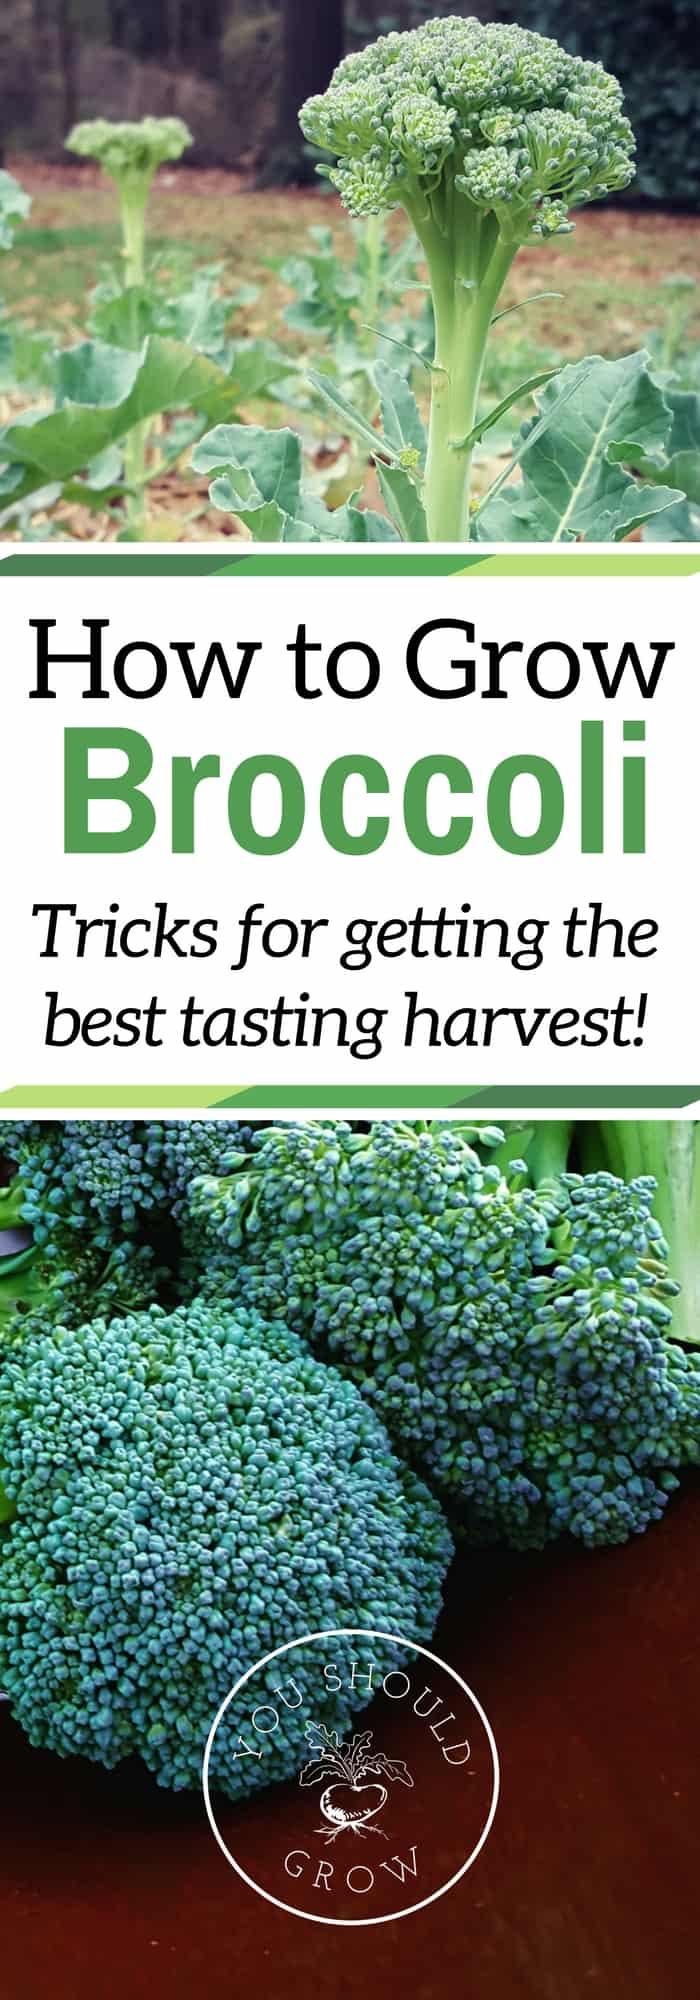 Image of homegrown broccoli with text overlay: How to grow broccoloi trics for getting the best tasting harvest